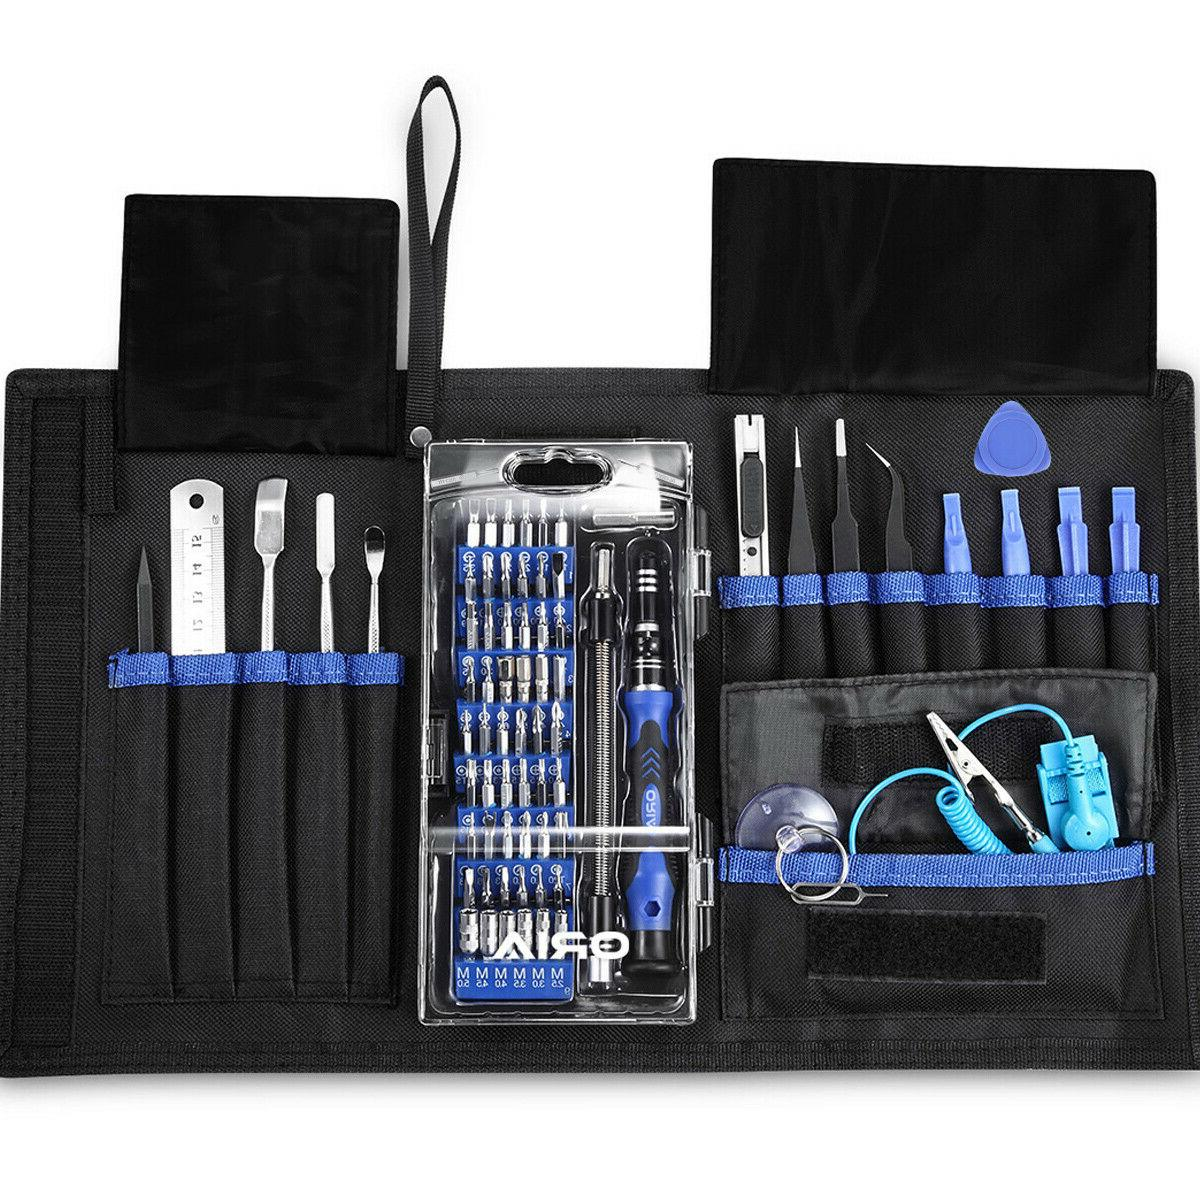 76 in 1 precision screwdriver set repair